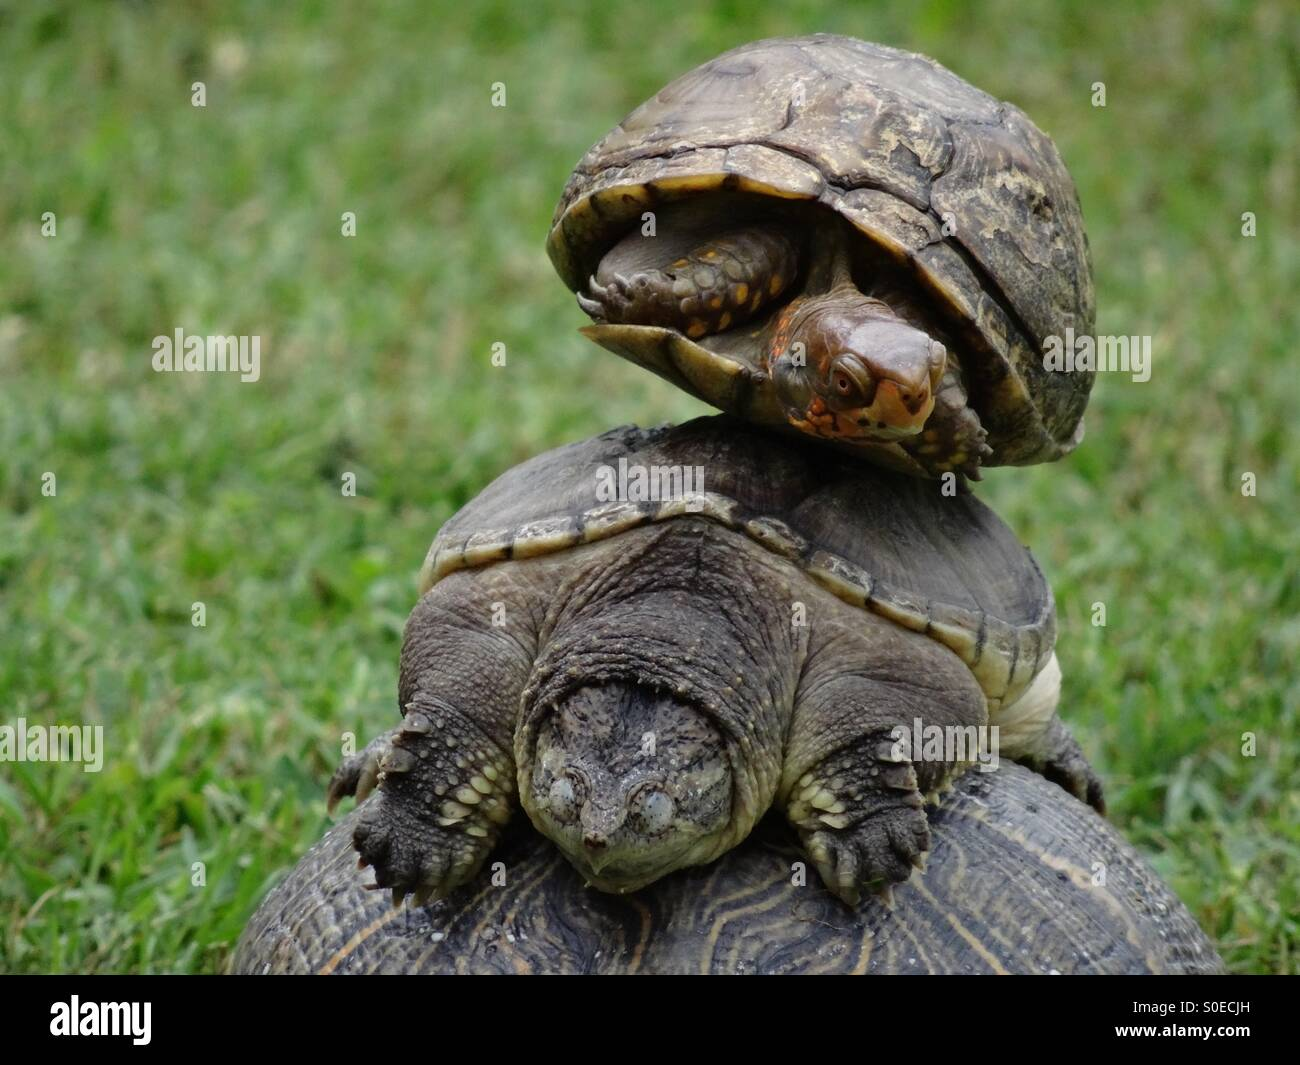 Box turtle on top of alligator snapping turtle Stock Photo